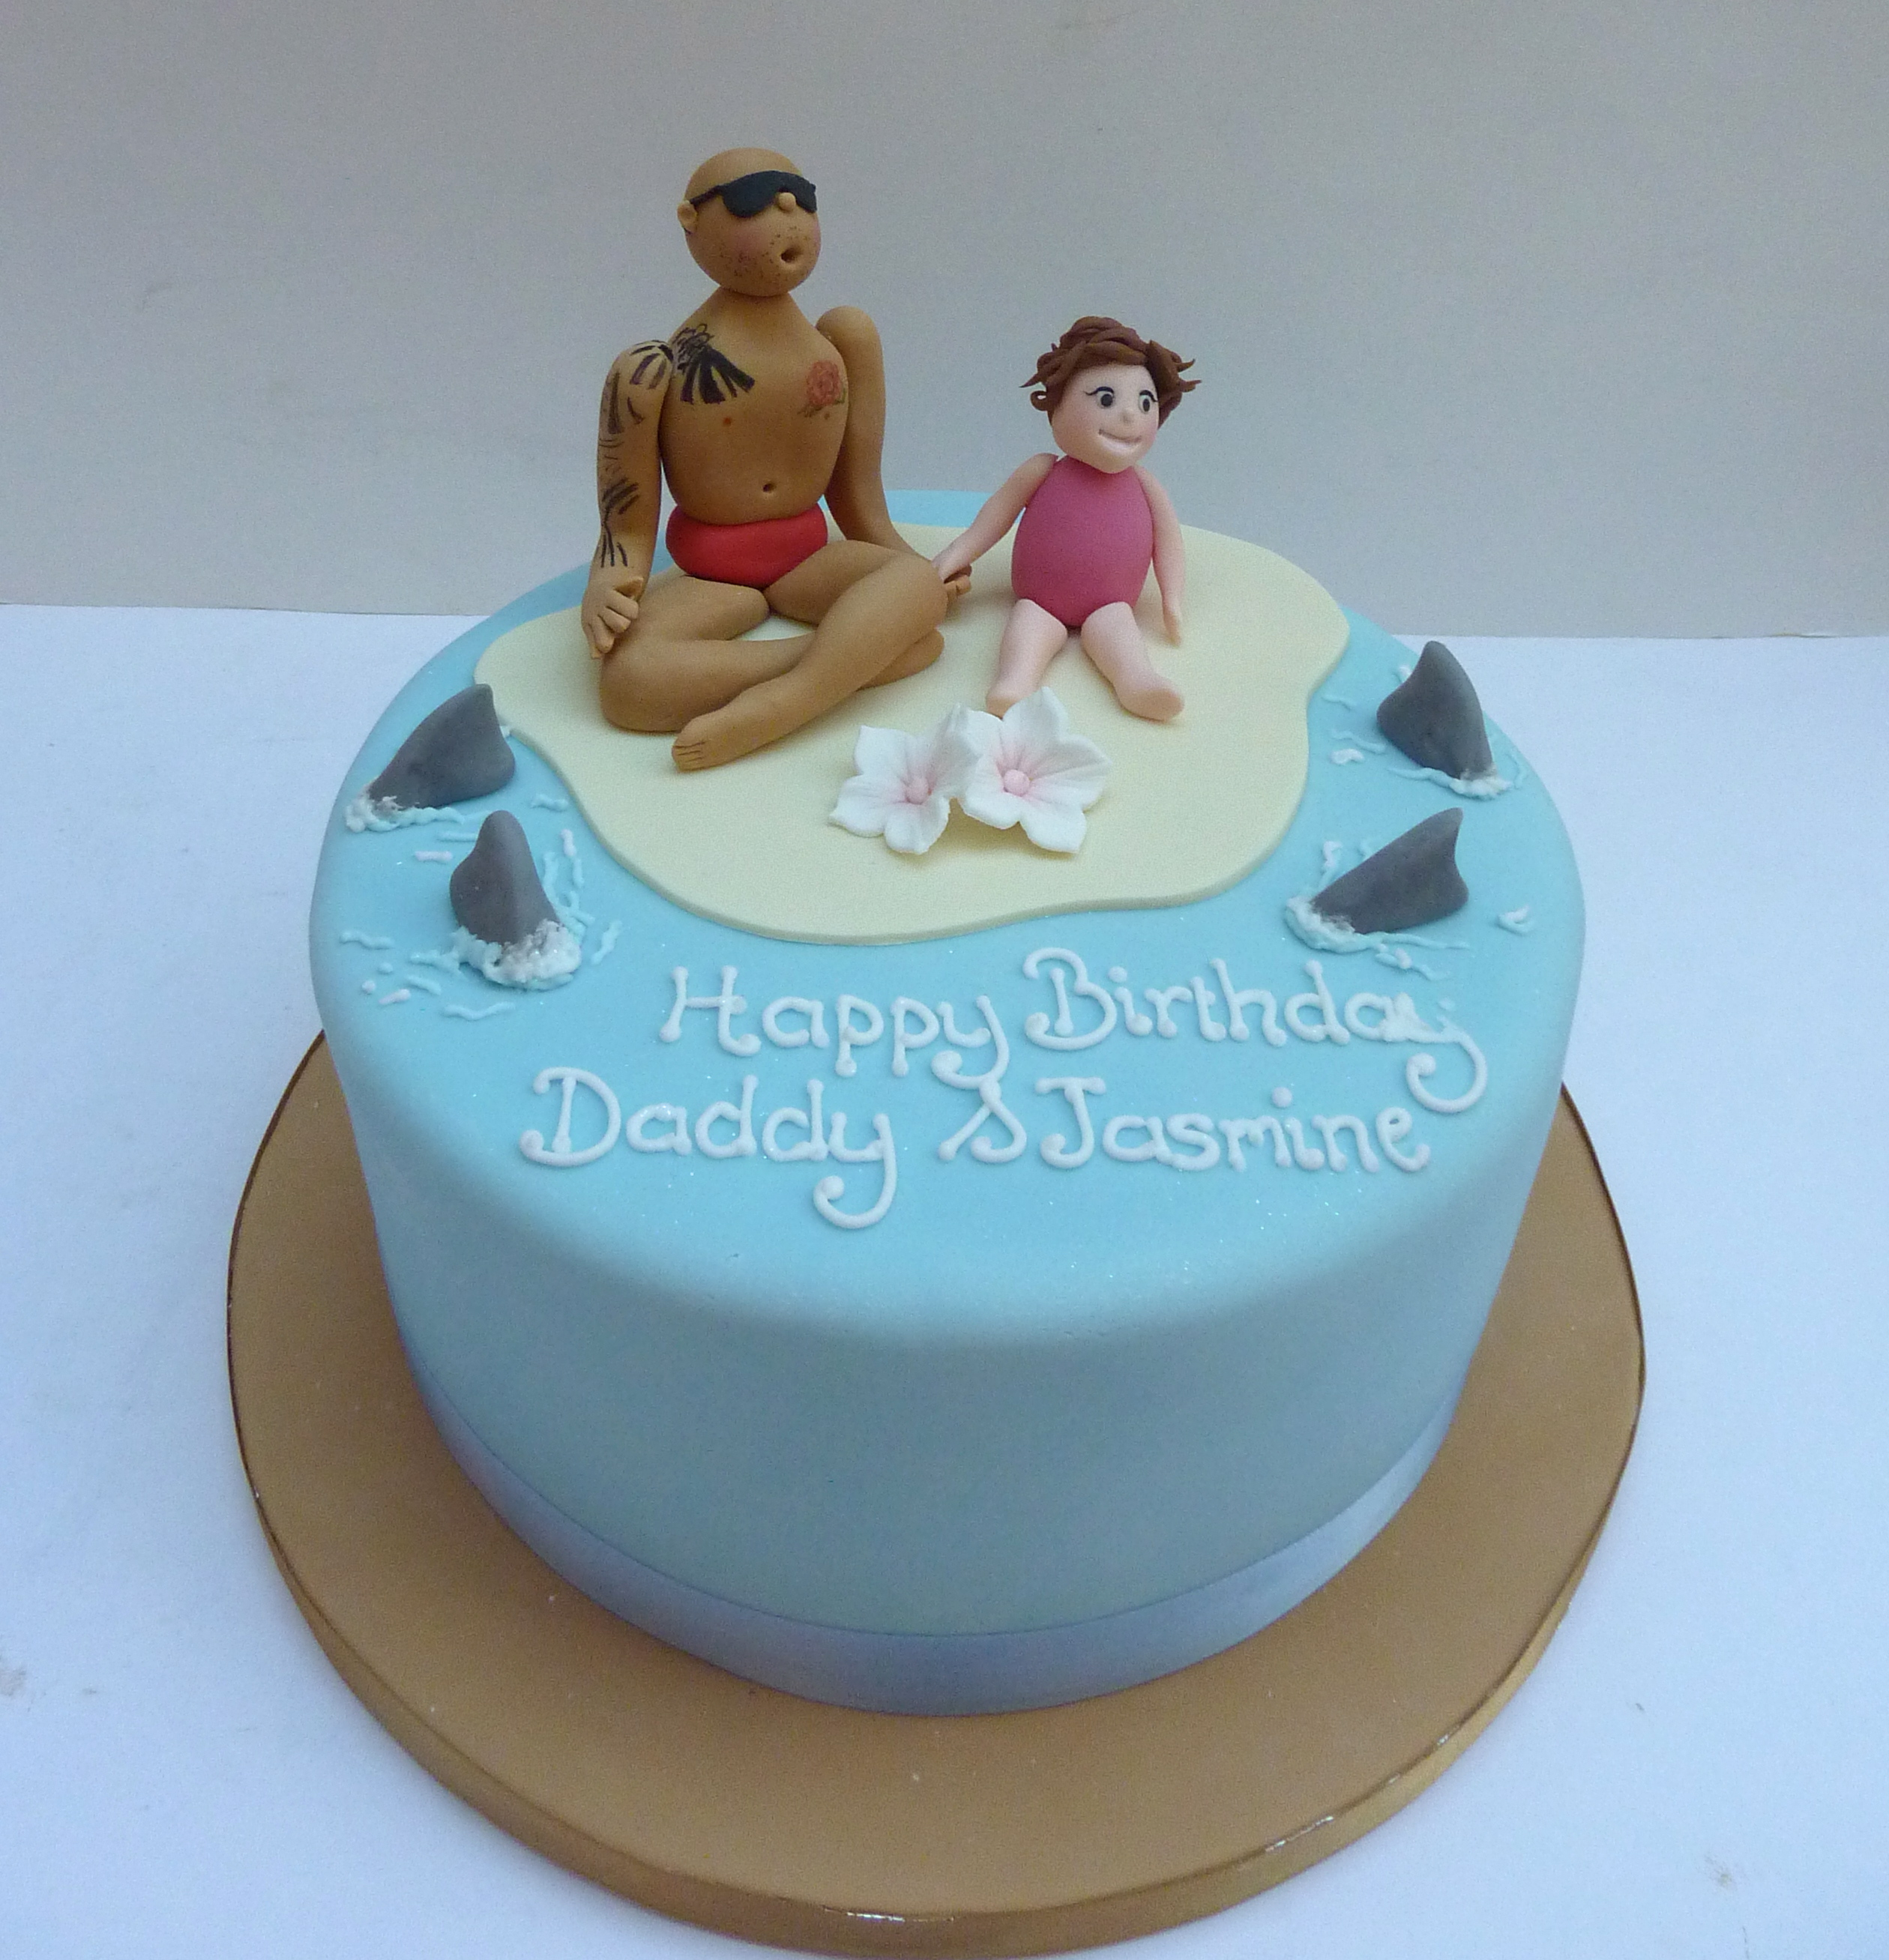 beach father and daughter birthday cake Etoile Bakery